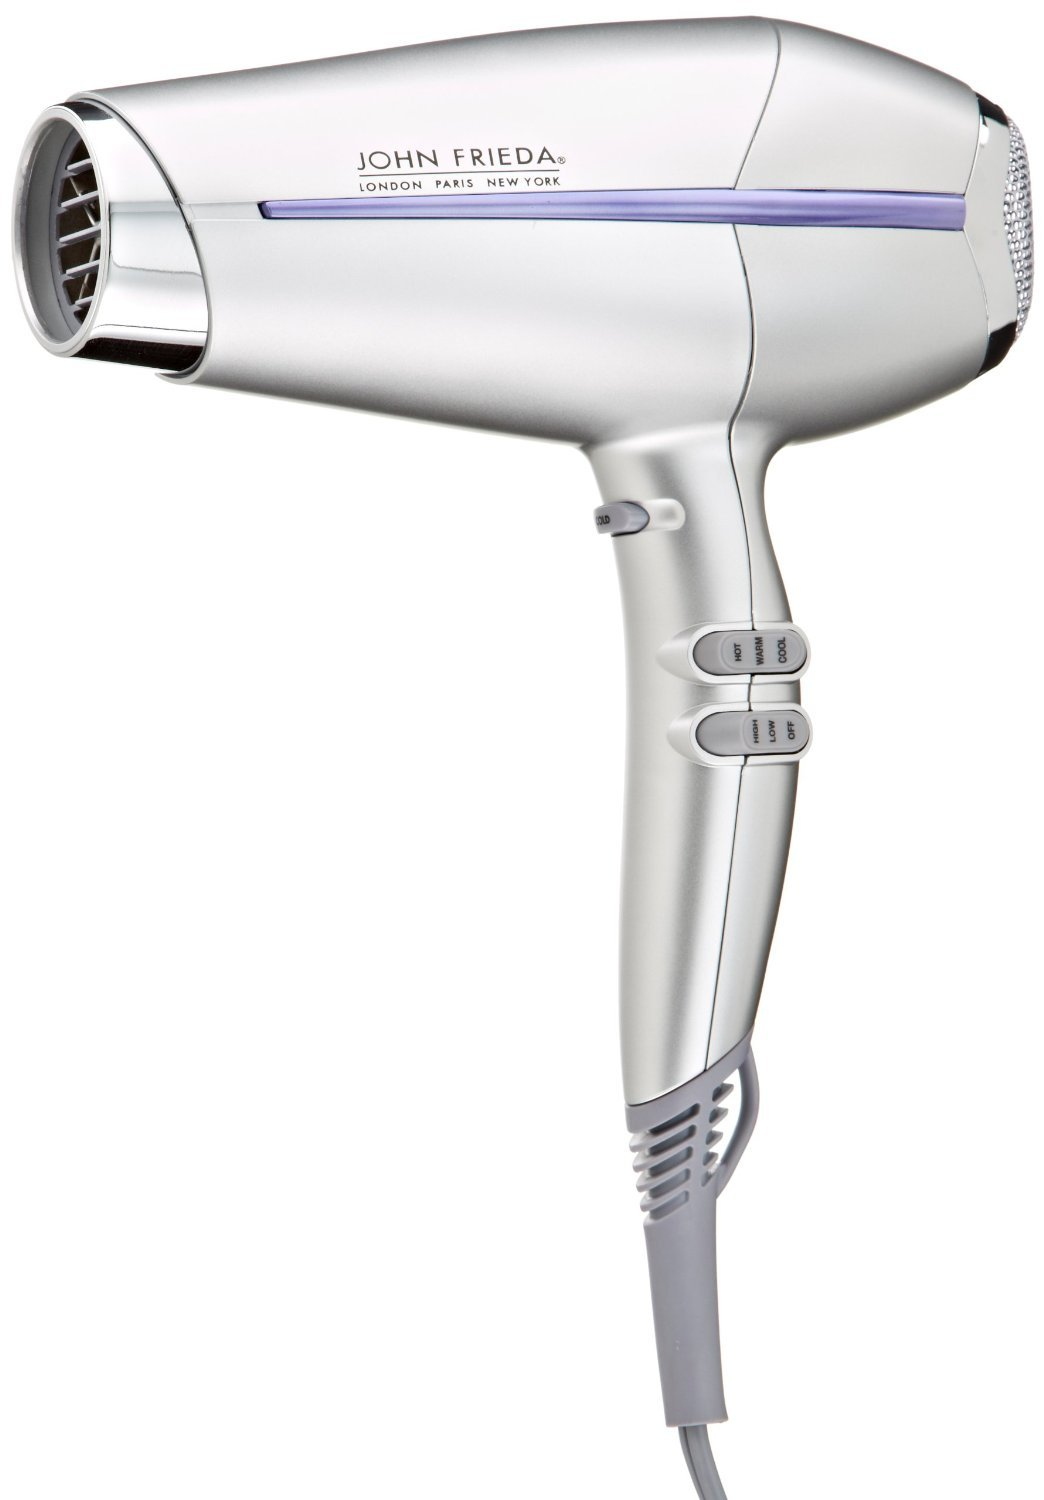 You'll get more versatility with hairstyles for older men by using a hair dryer.